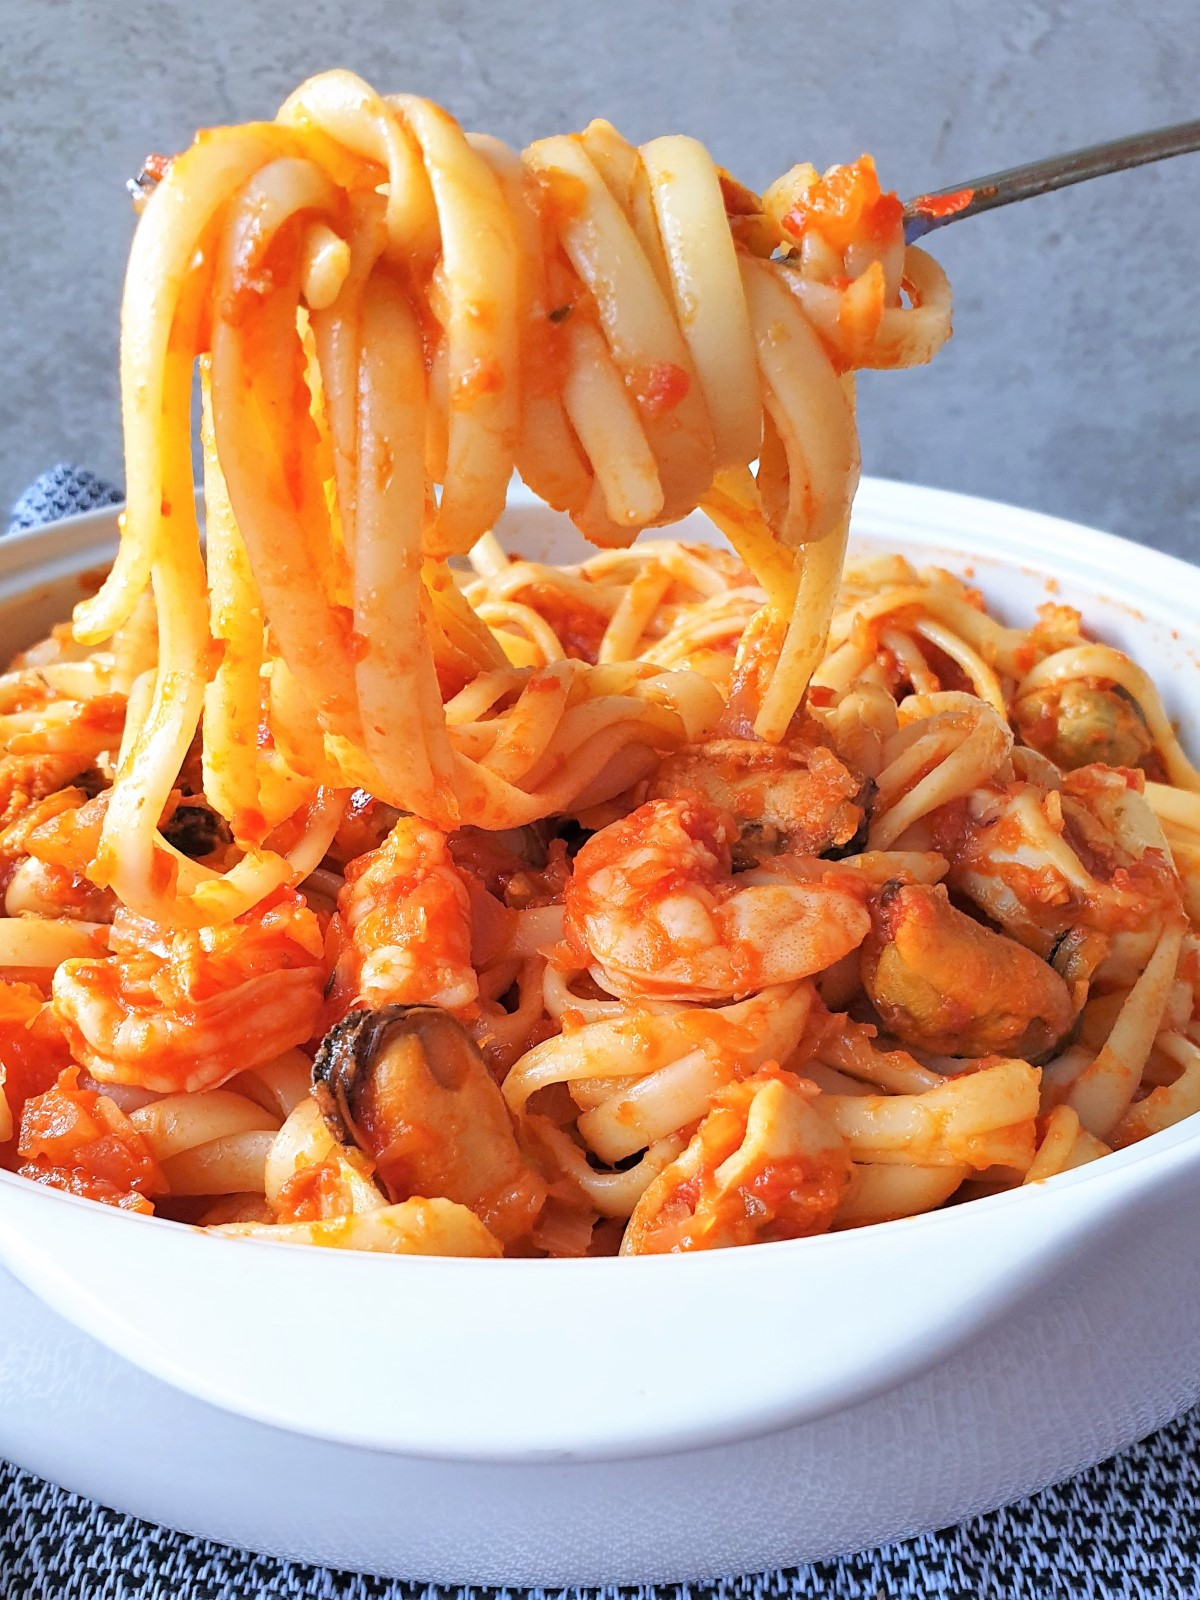 Pasta twirled around a fork, over a bowl of pasta pescatore.